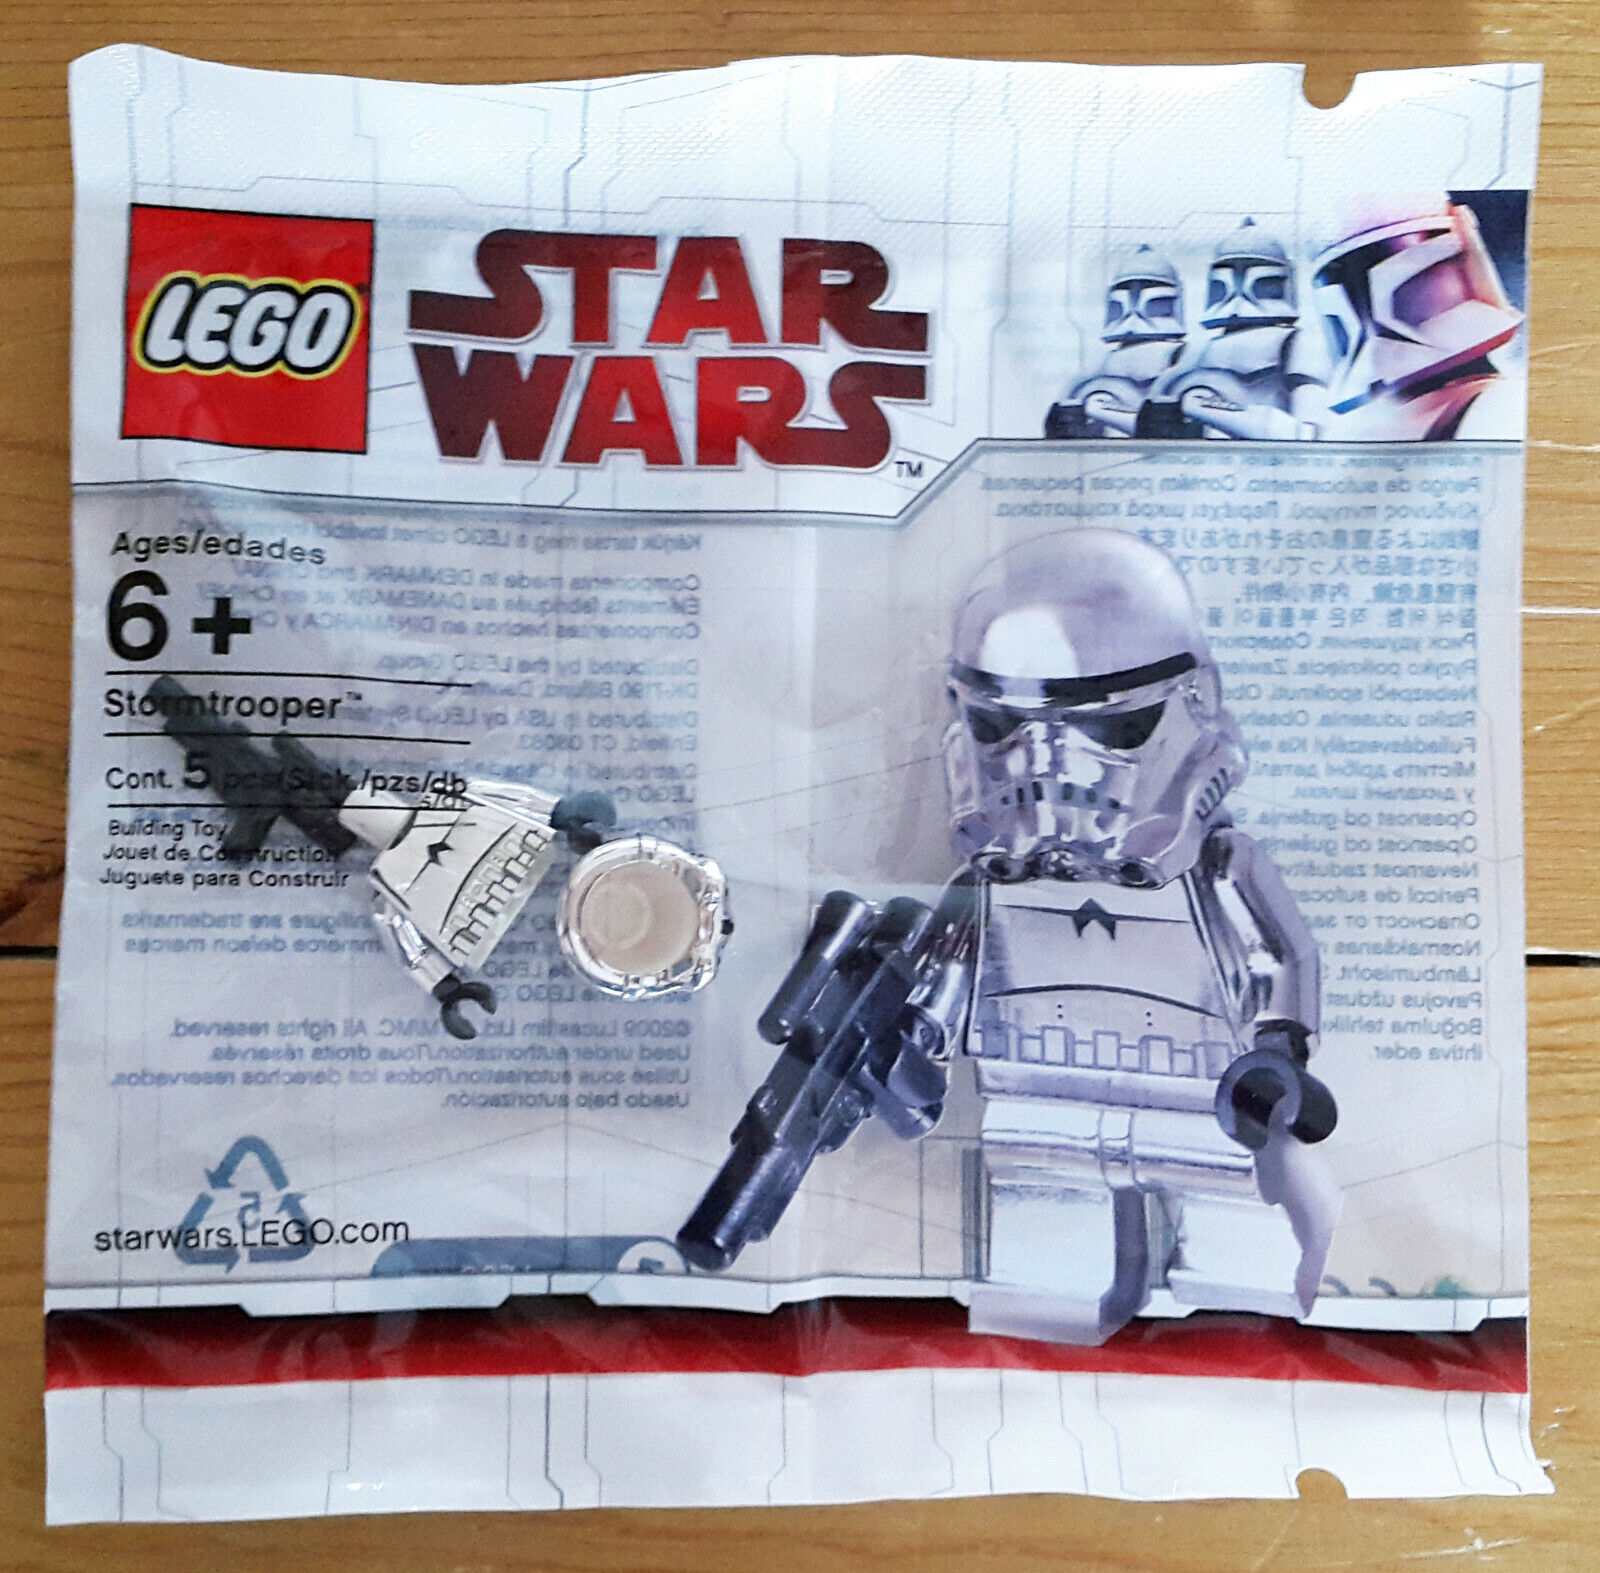 LEGO Star Wars Chrome Stormtrooper Minifig - New, Sealed Sealed Sealed Polybag 2853590 4591726 a580ba